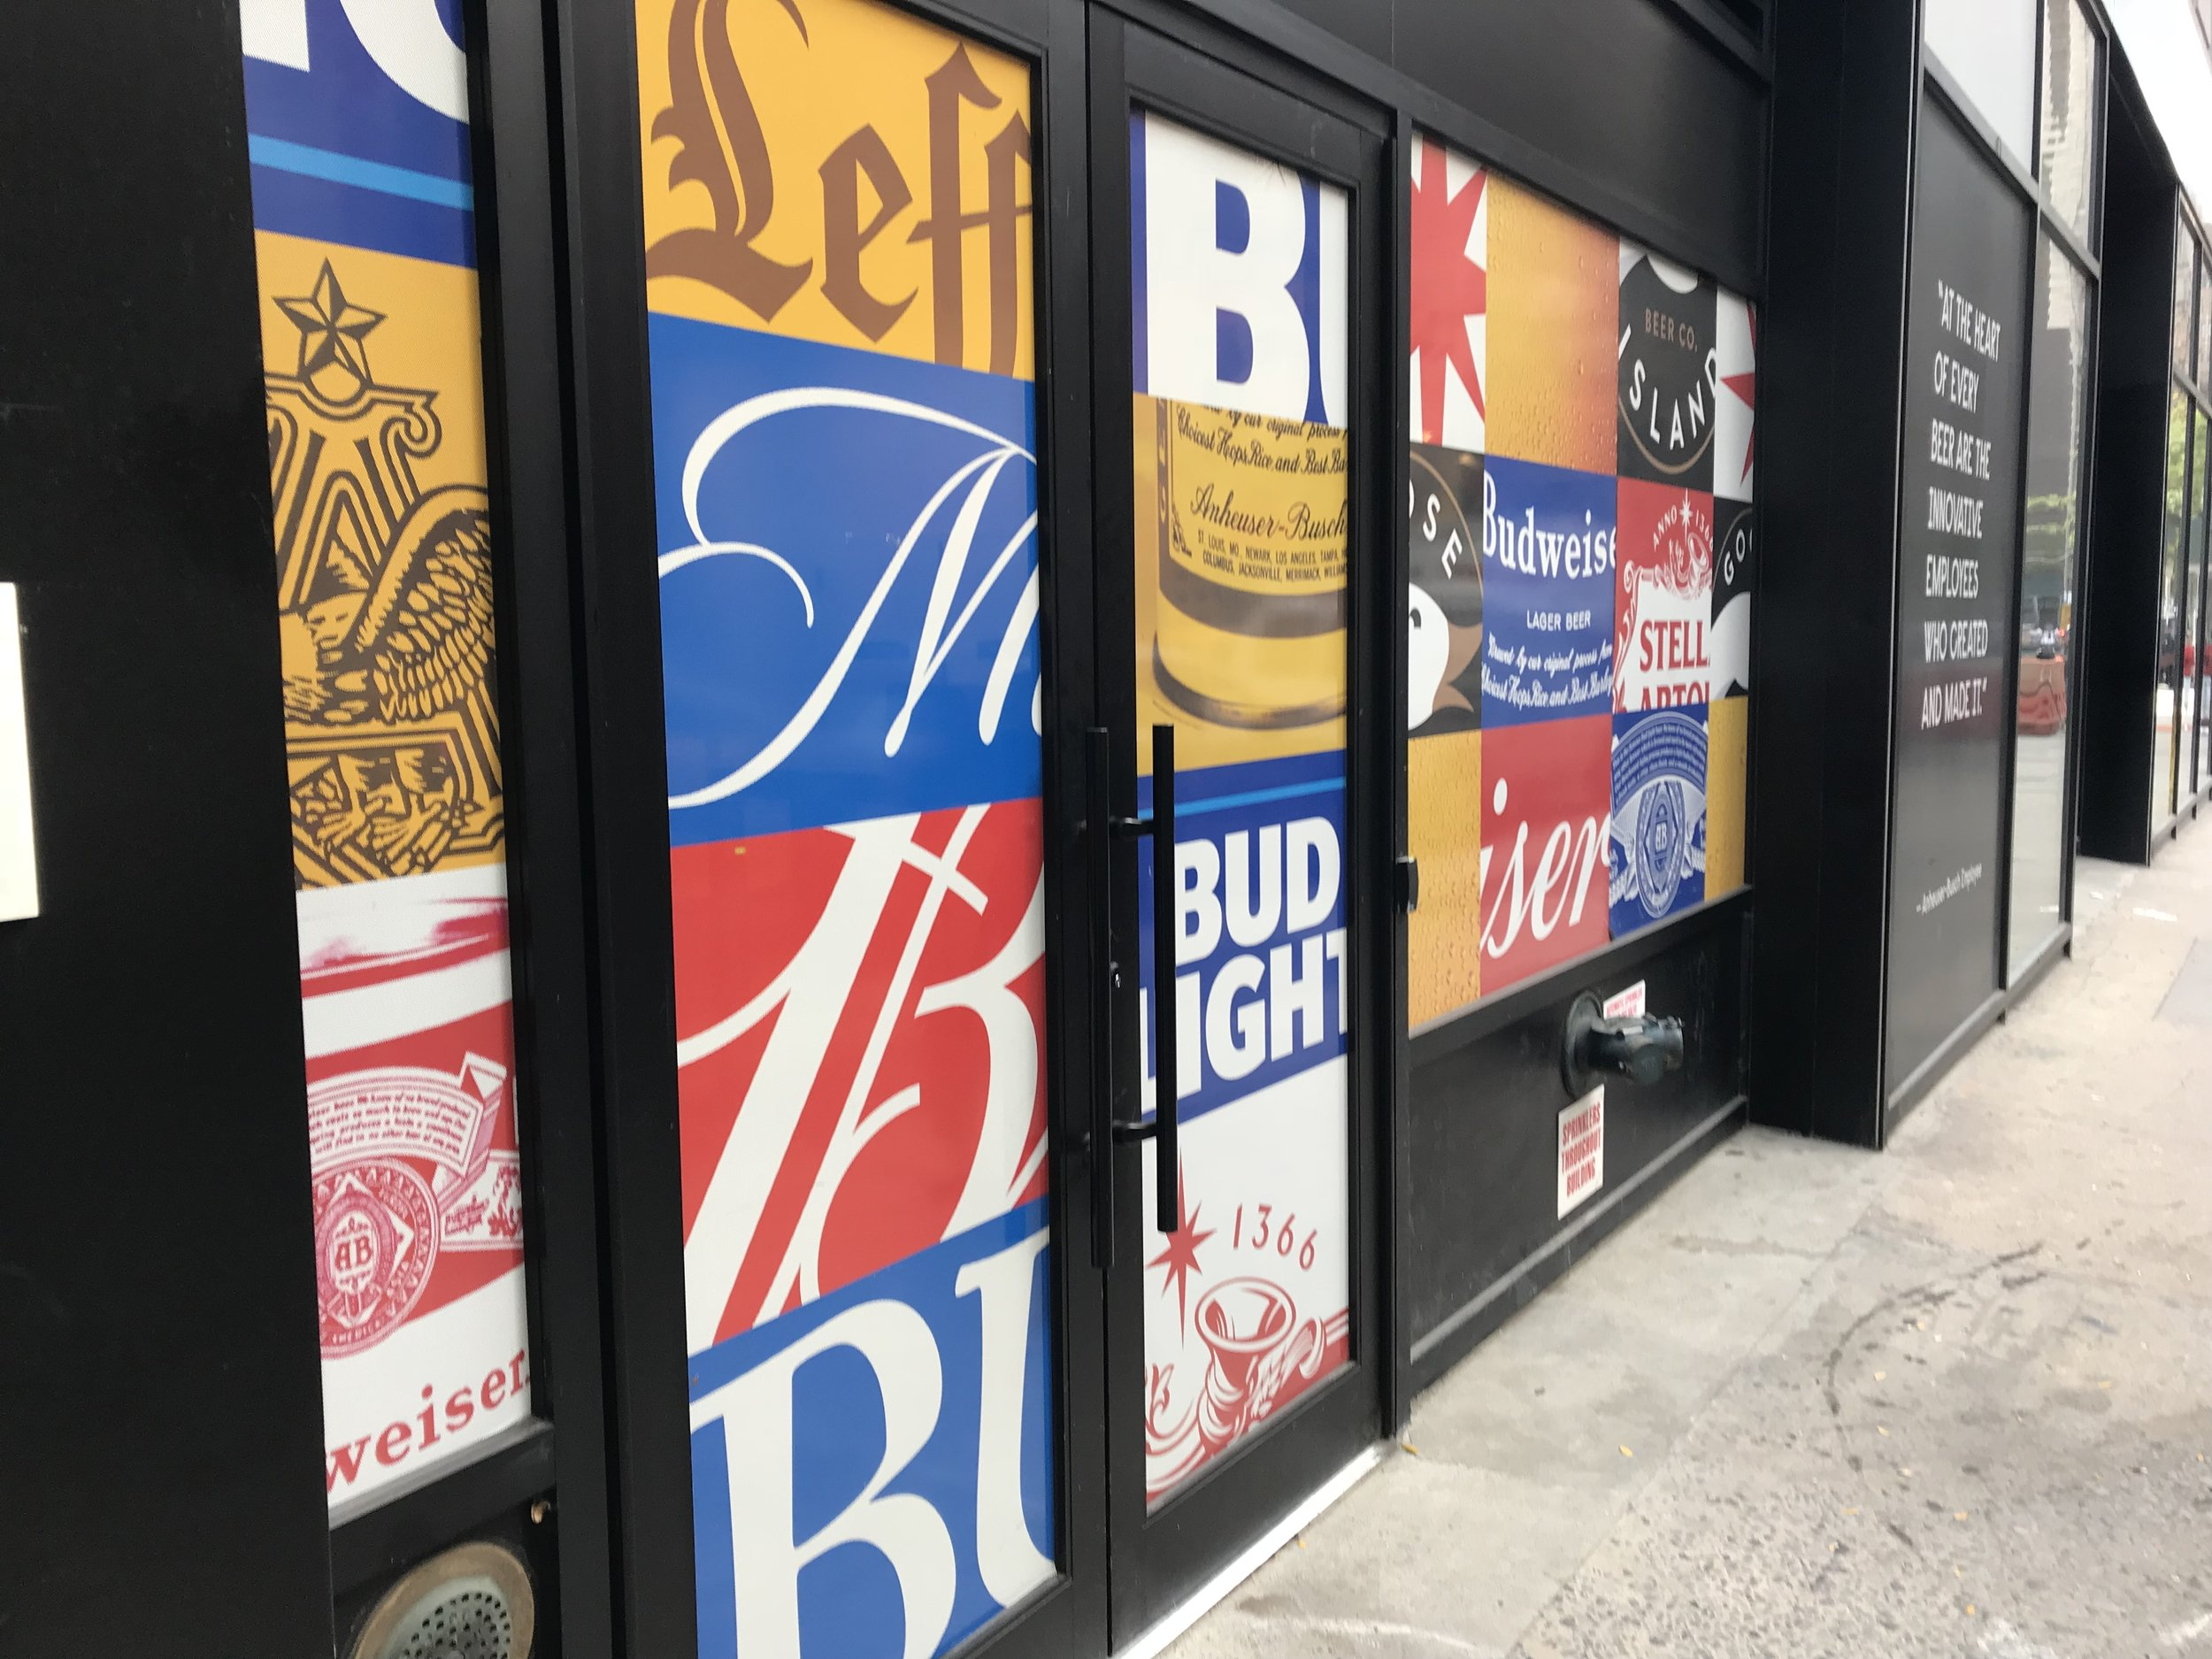 Anheuser Busch logos greet visitors outside.